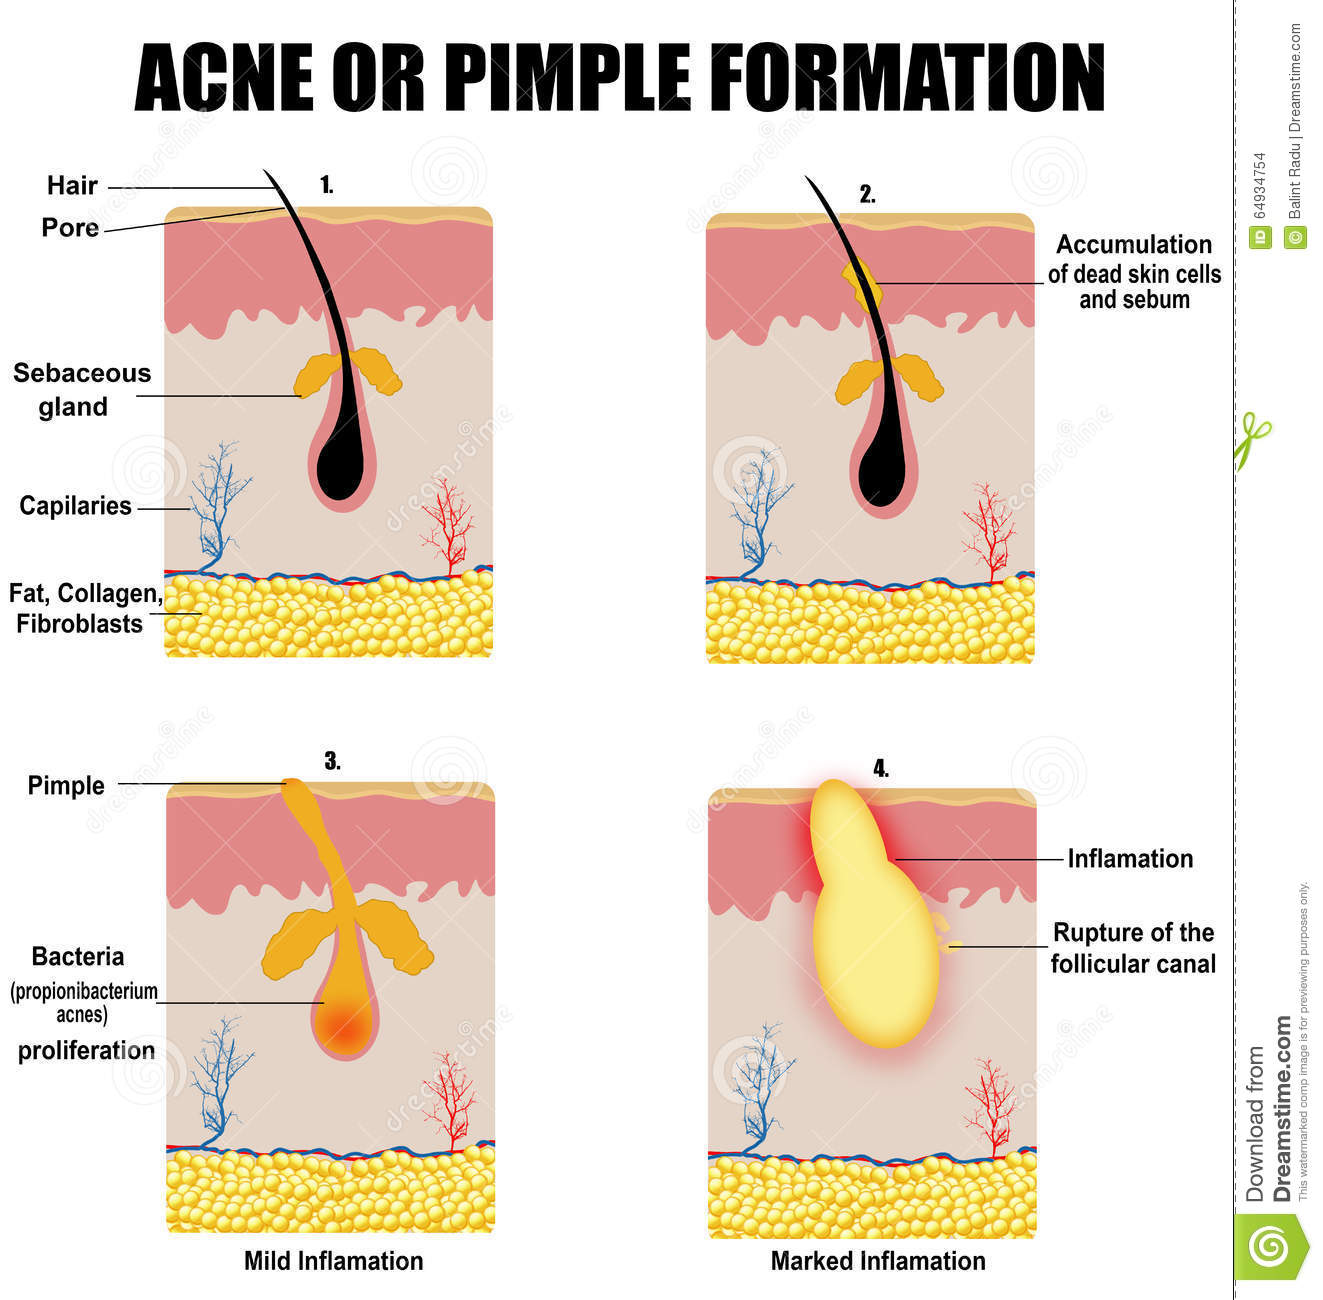 hight resolution of formation of skin acne or pimple